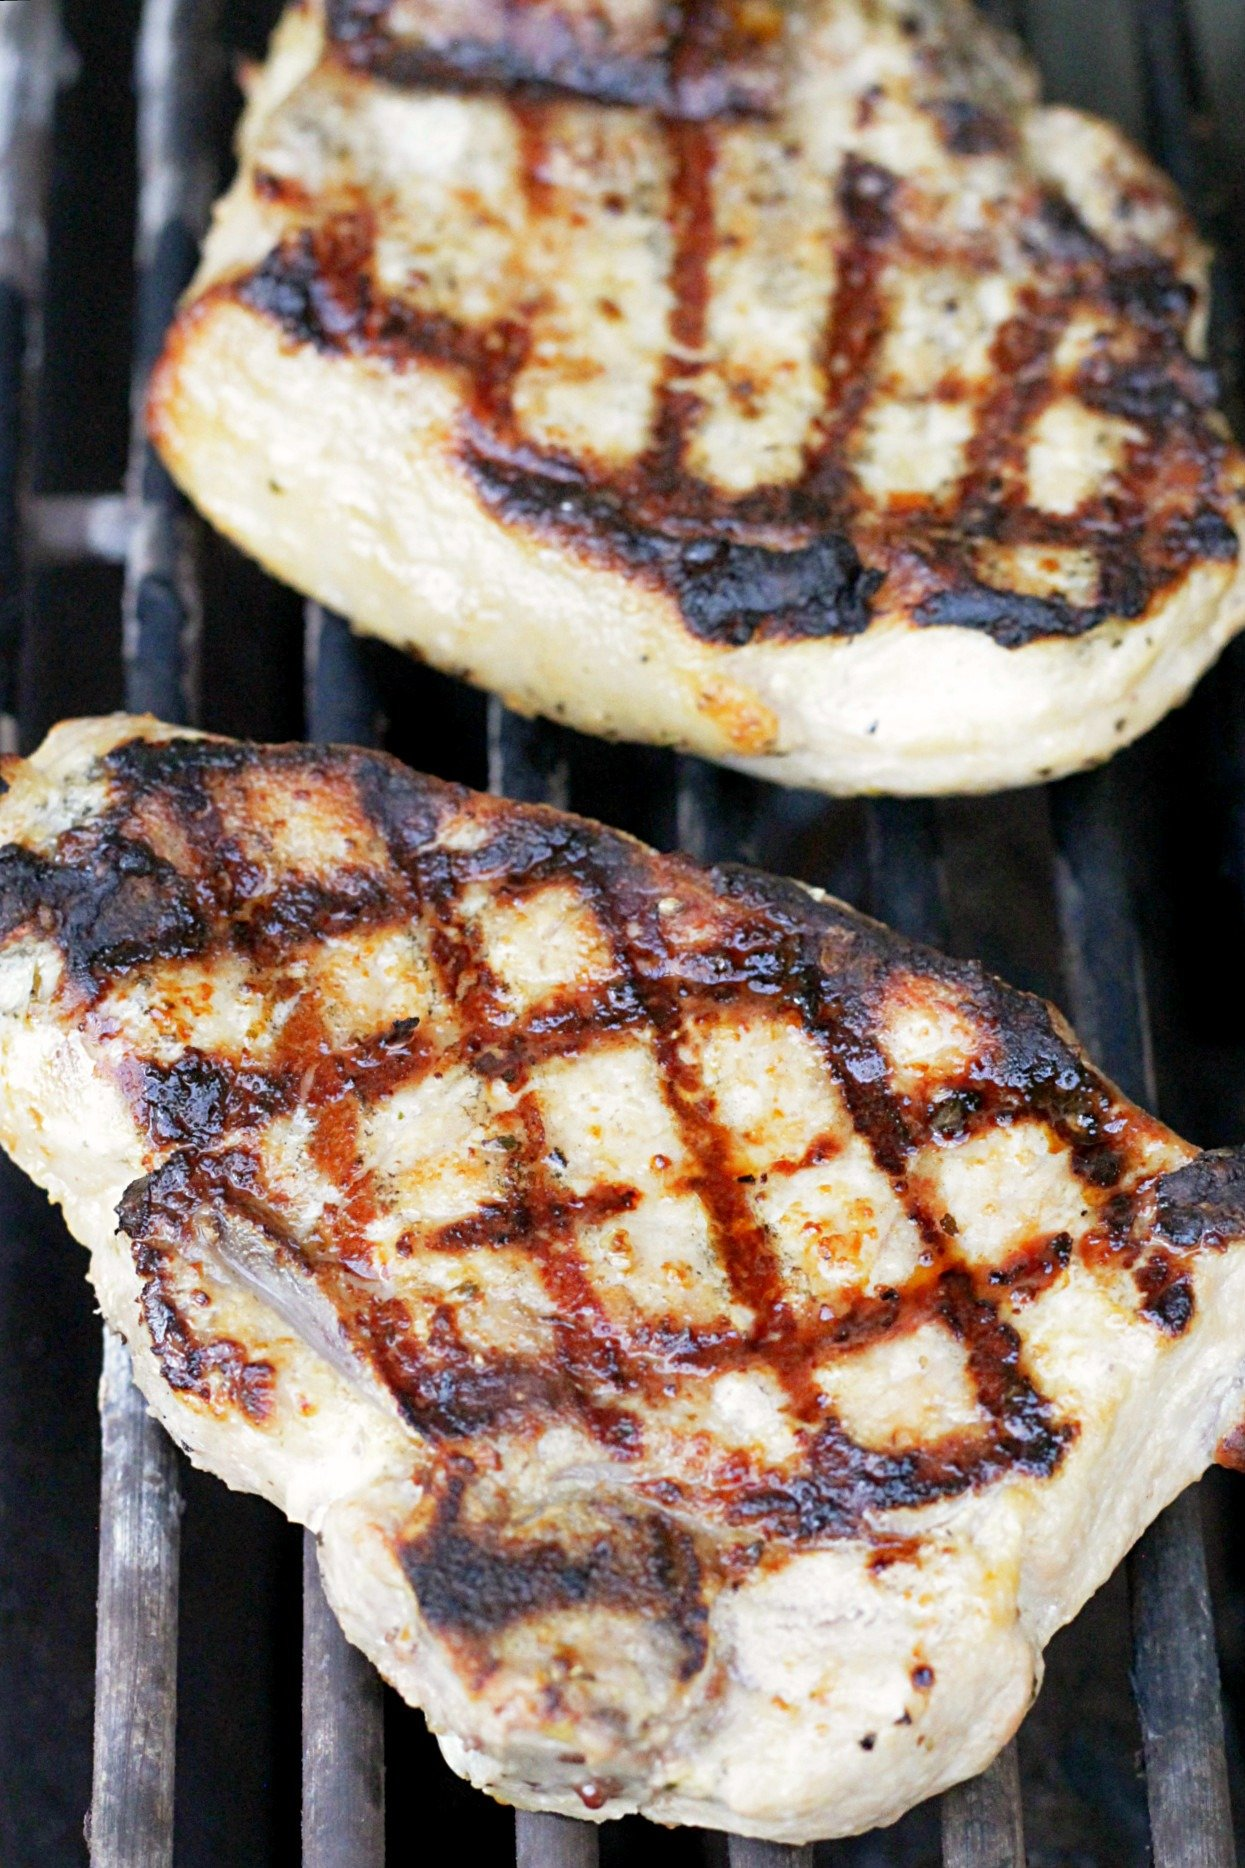 perfectly grilled pork chops on the grill